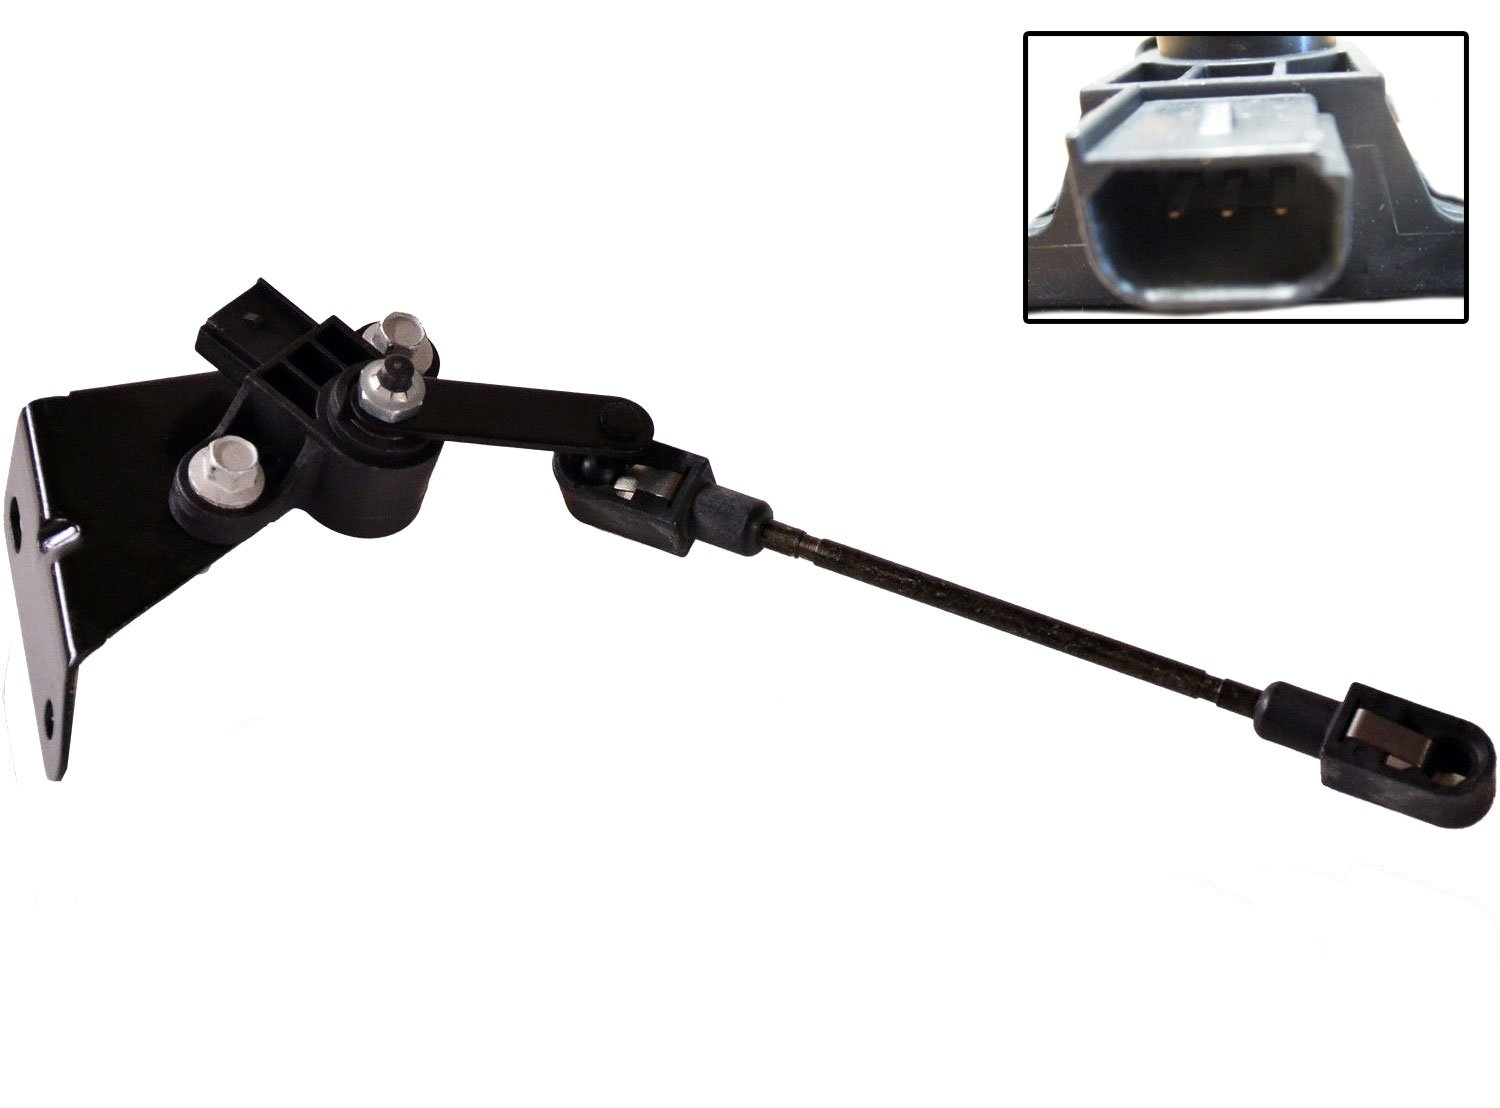 Suspension Auto Ride Leveling Height Sensor w/ Bracket Rear for 03-11 Ford Crown Victoria Lincoln Town Car Mercury Grand Marquis Replaces 8W1Z-5359-A 3W1Z-5359-AA